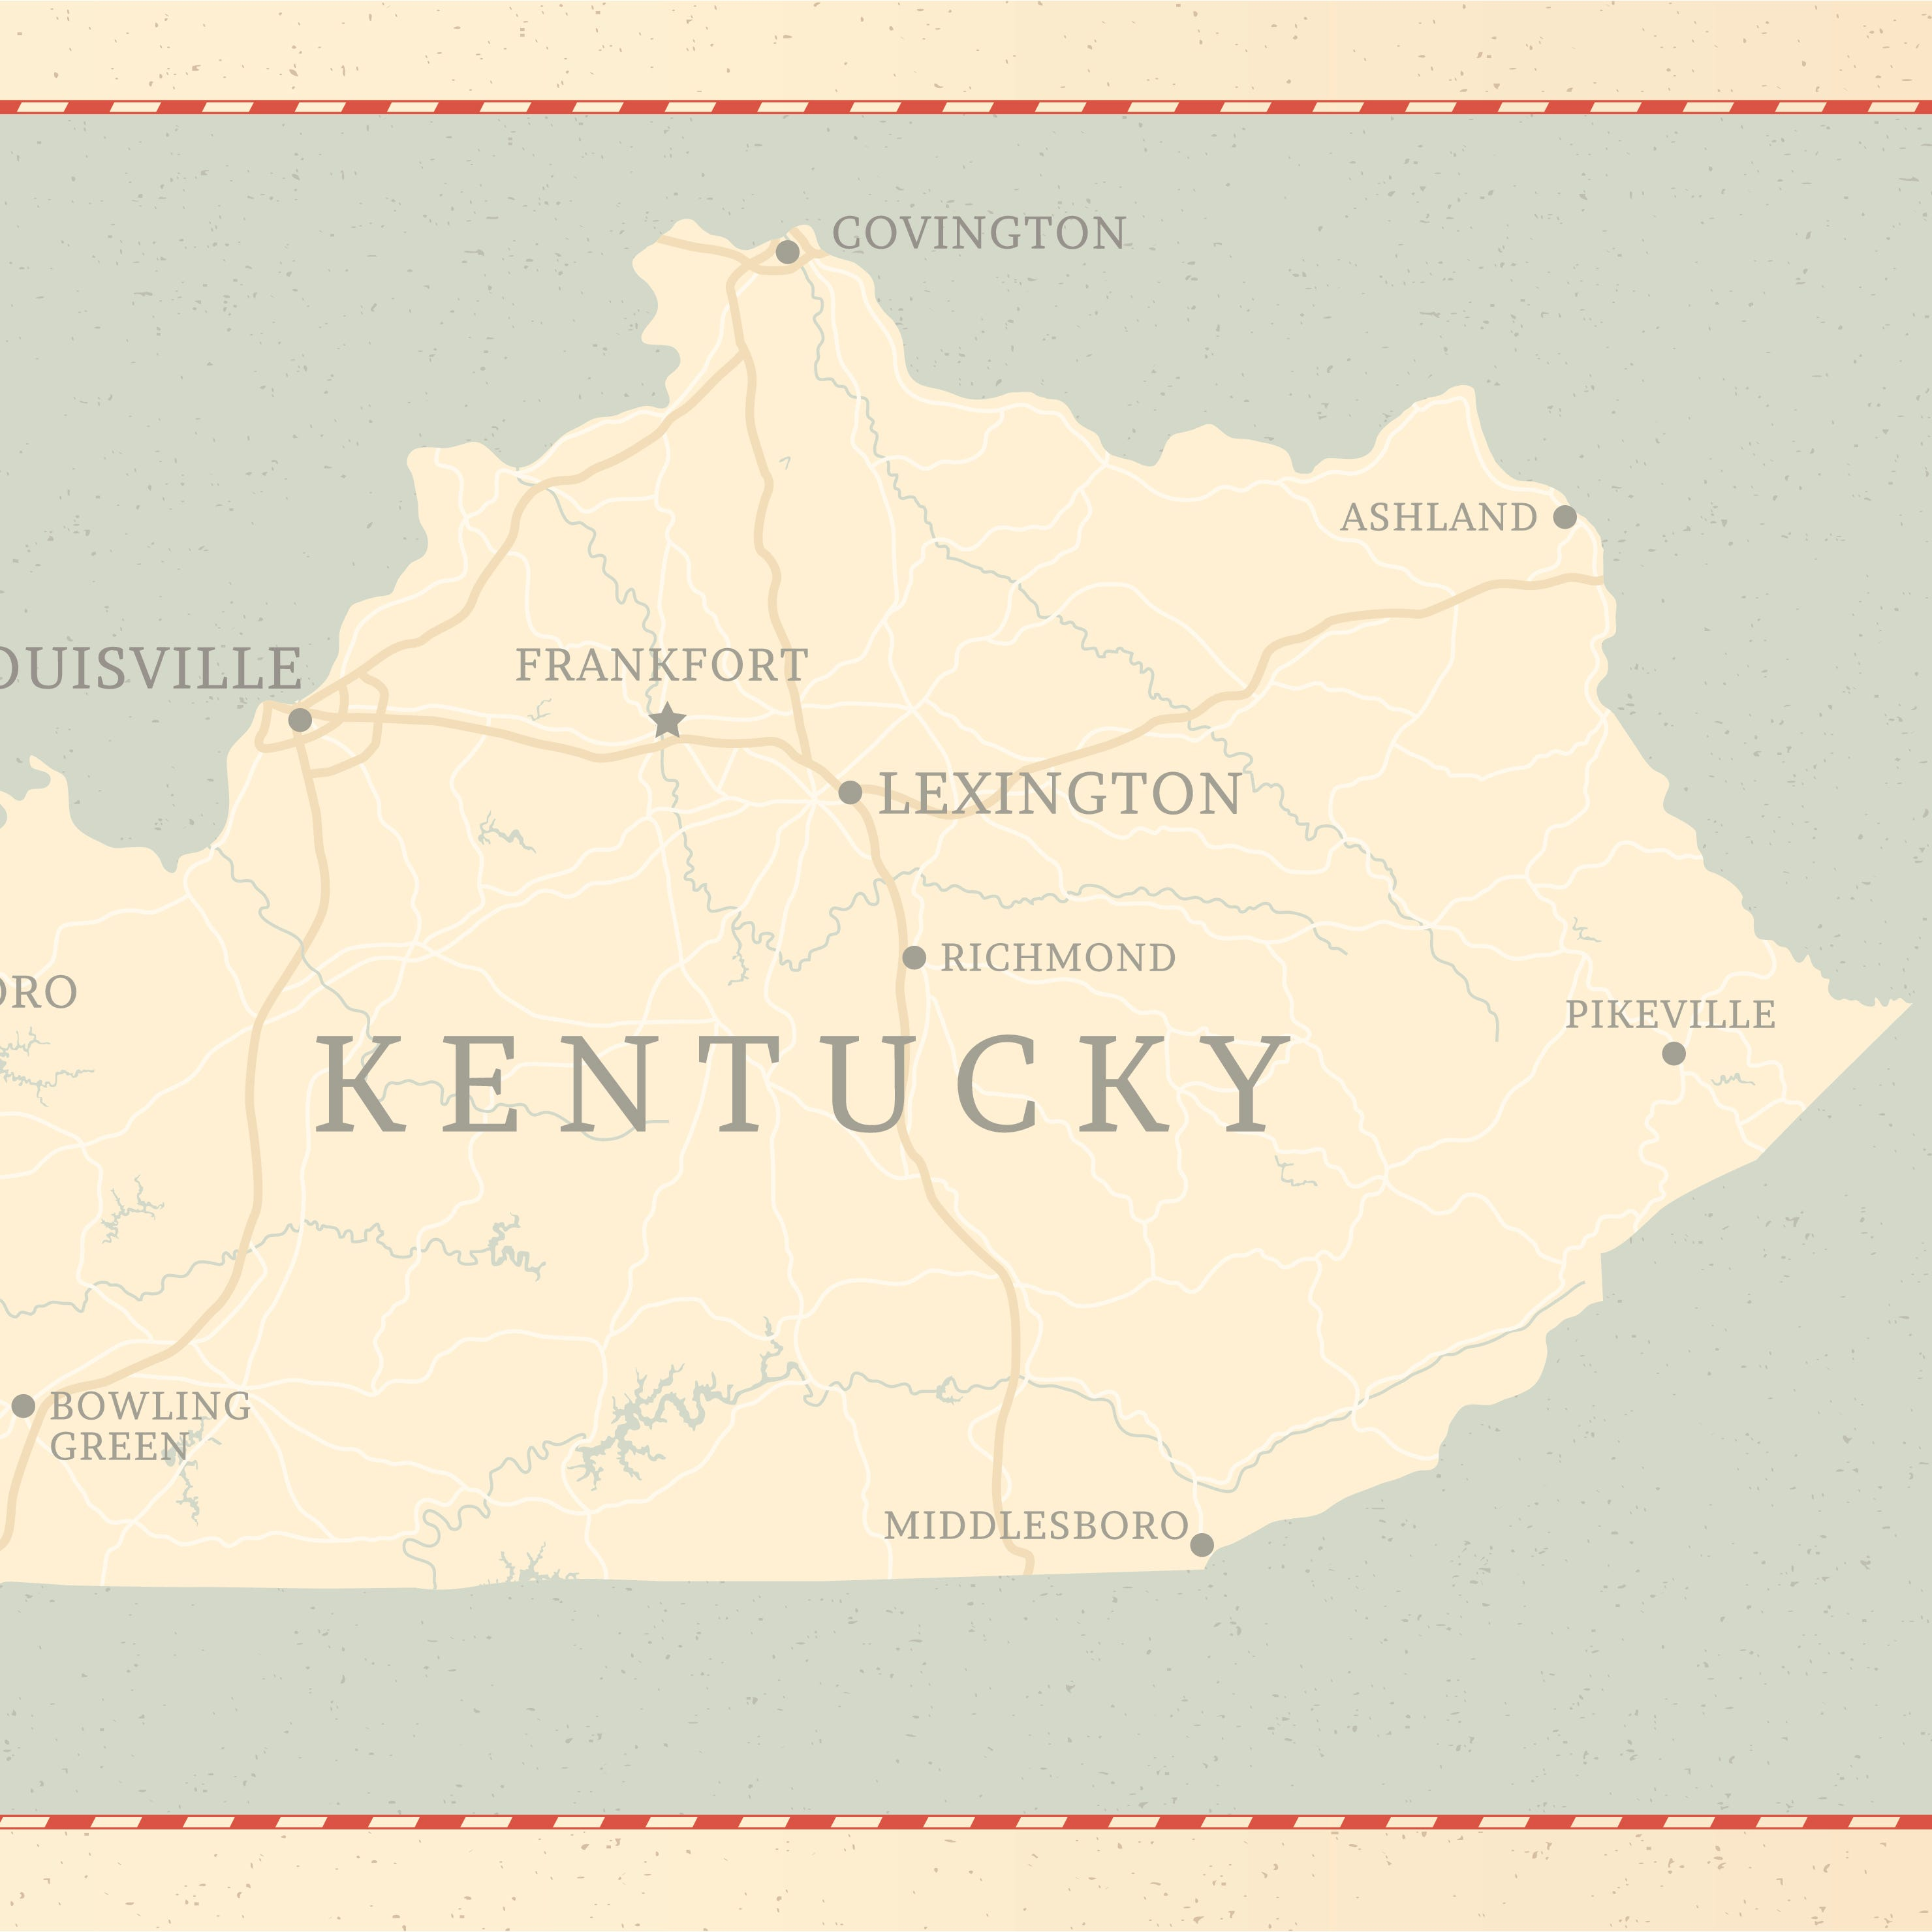 Kentucky named one of the most sexist states - and it's hurting women